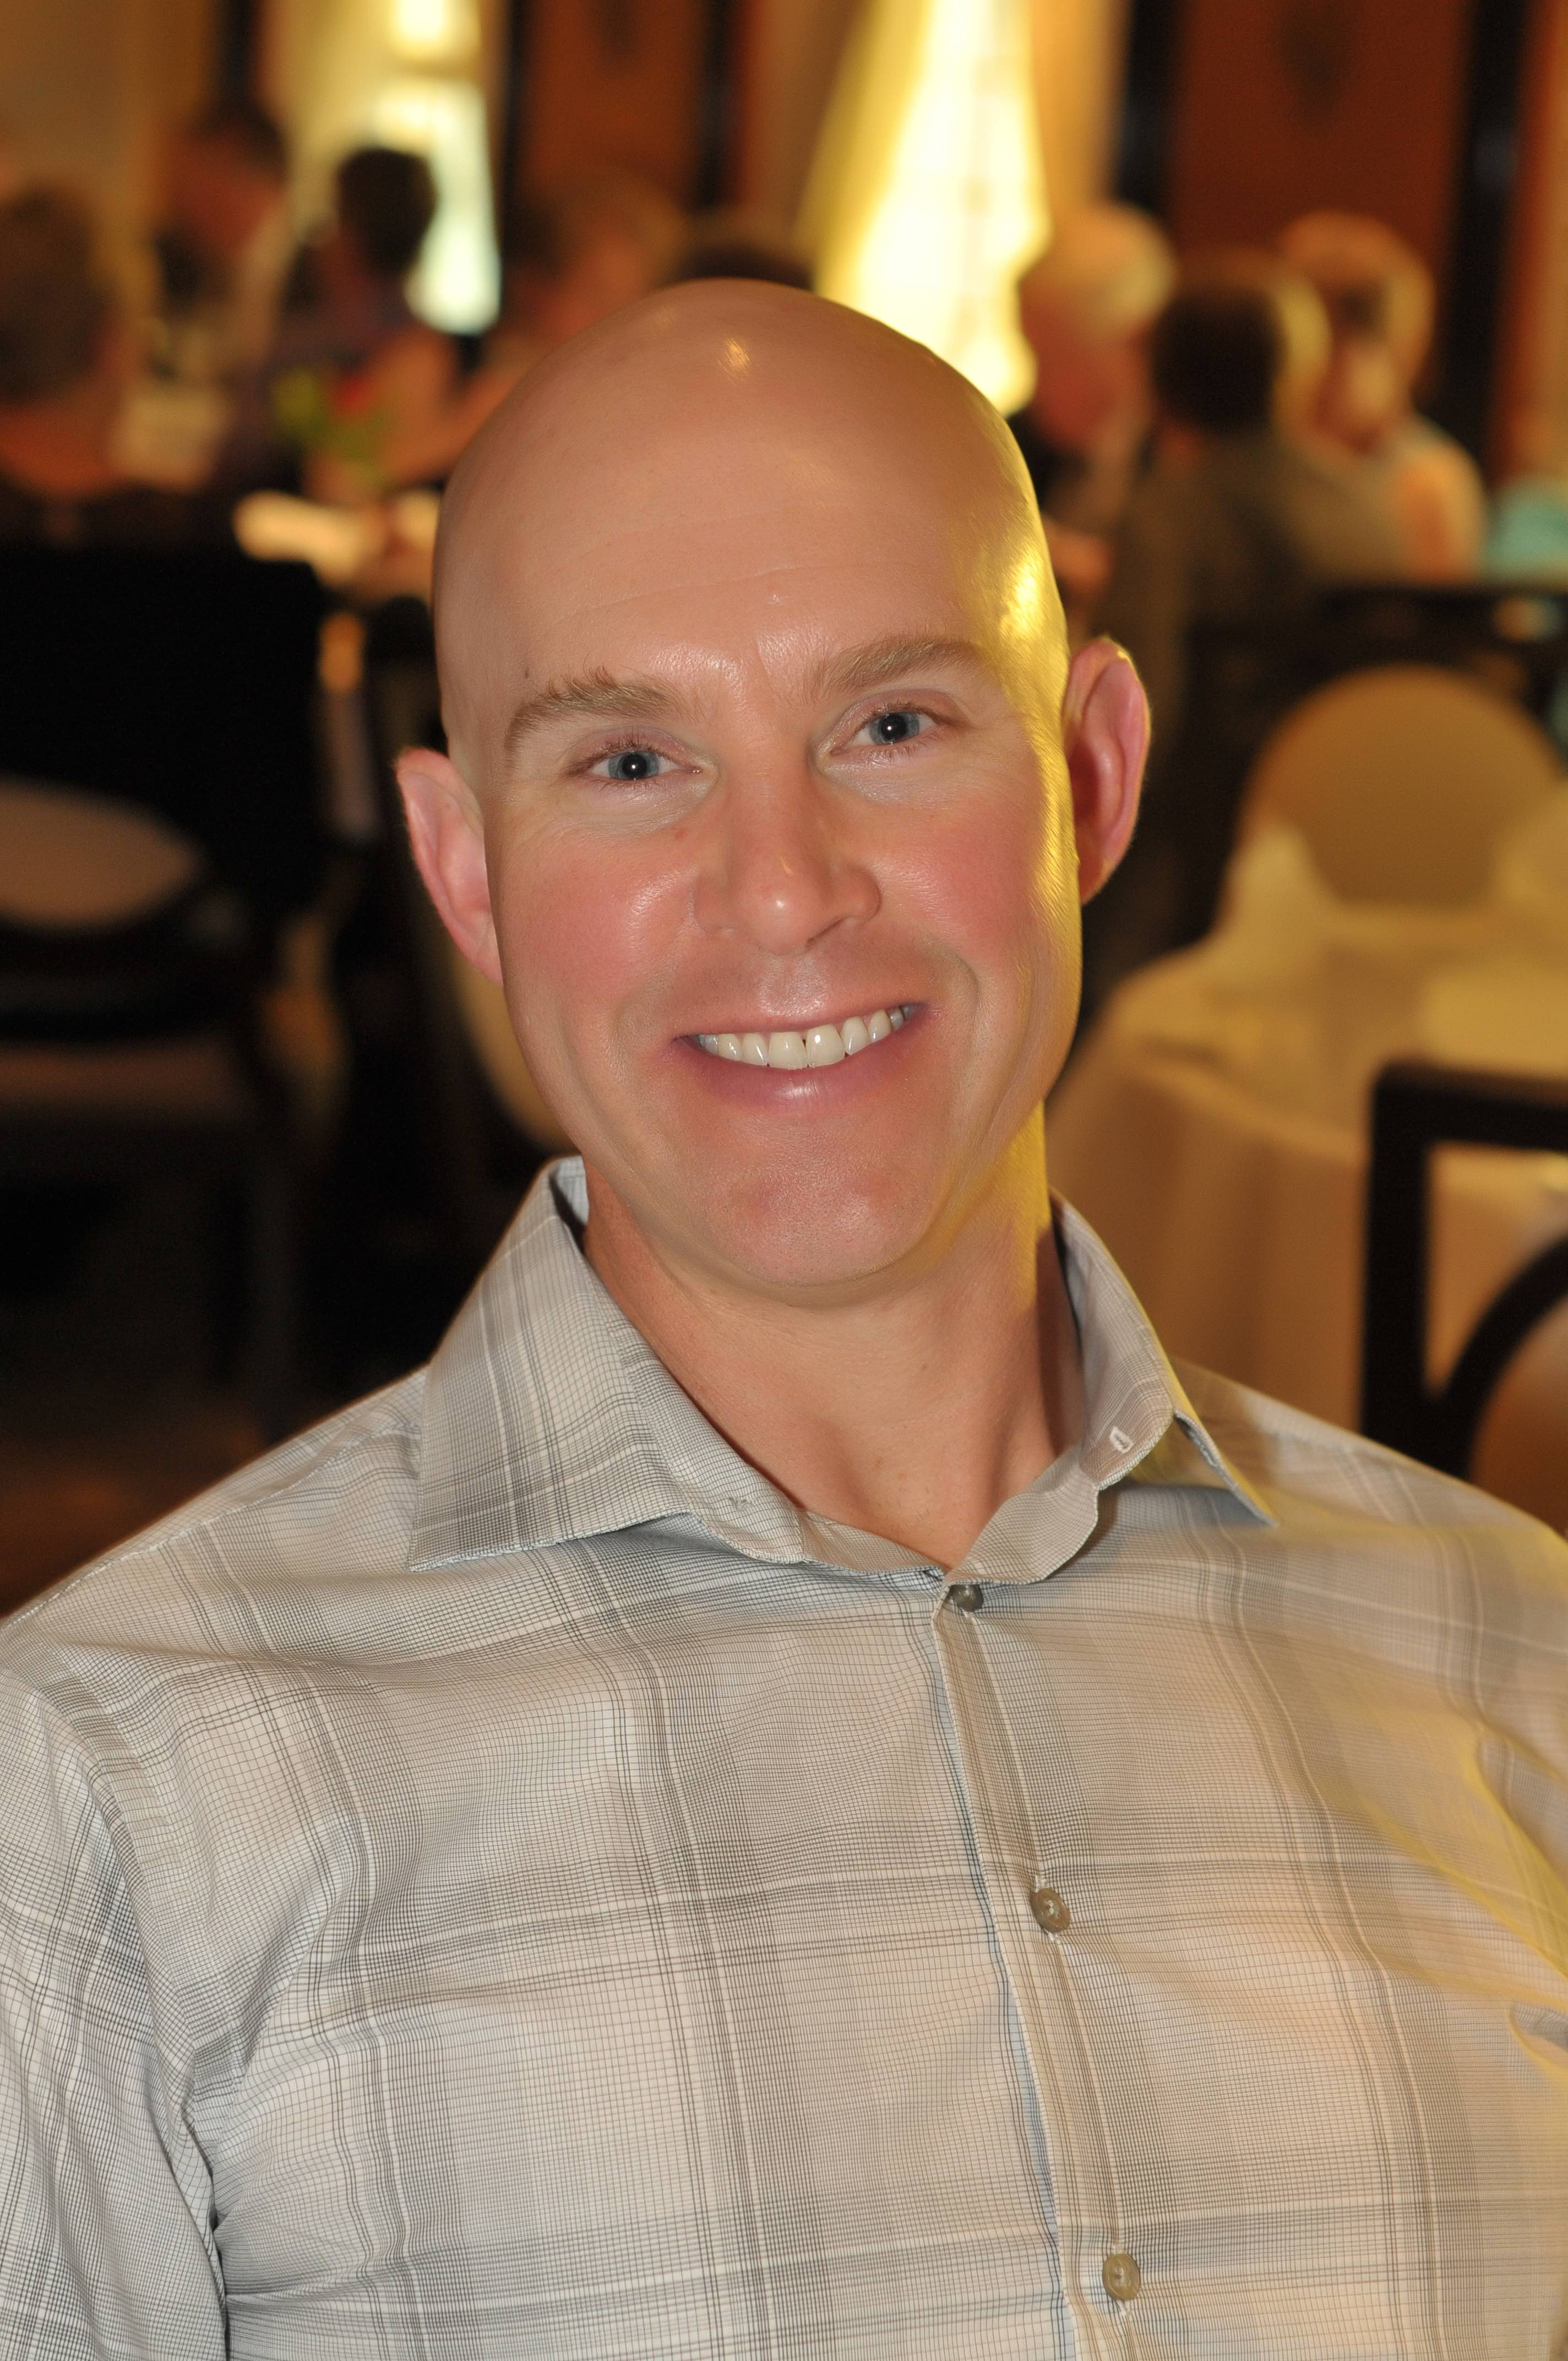 Sinsational Smile Chris Feist, Sales Manager - West Coast